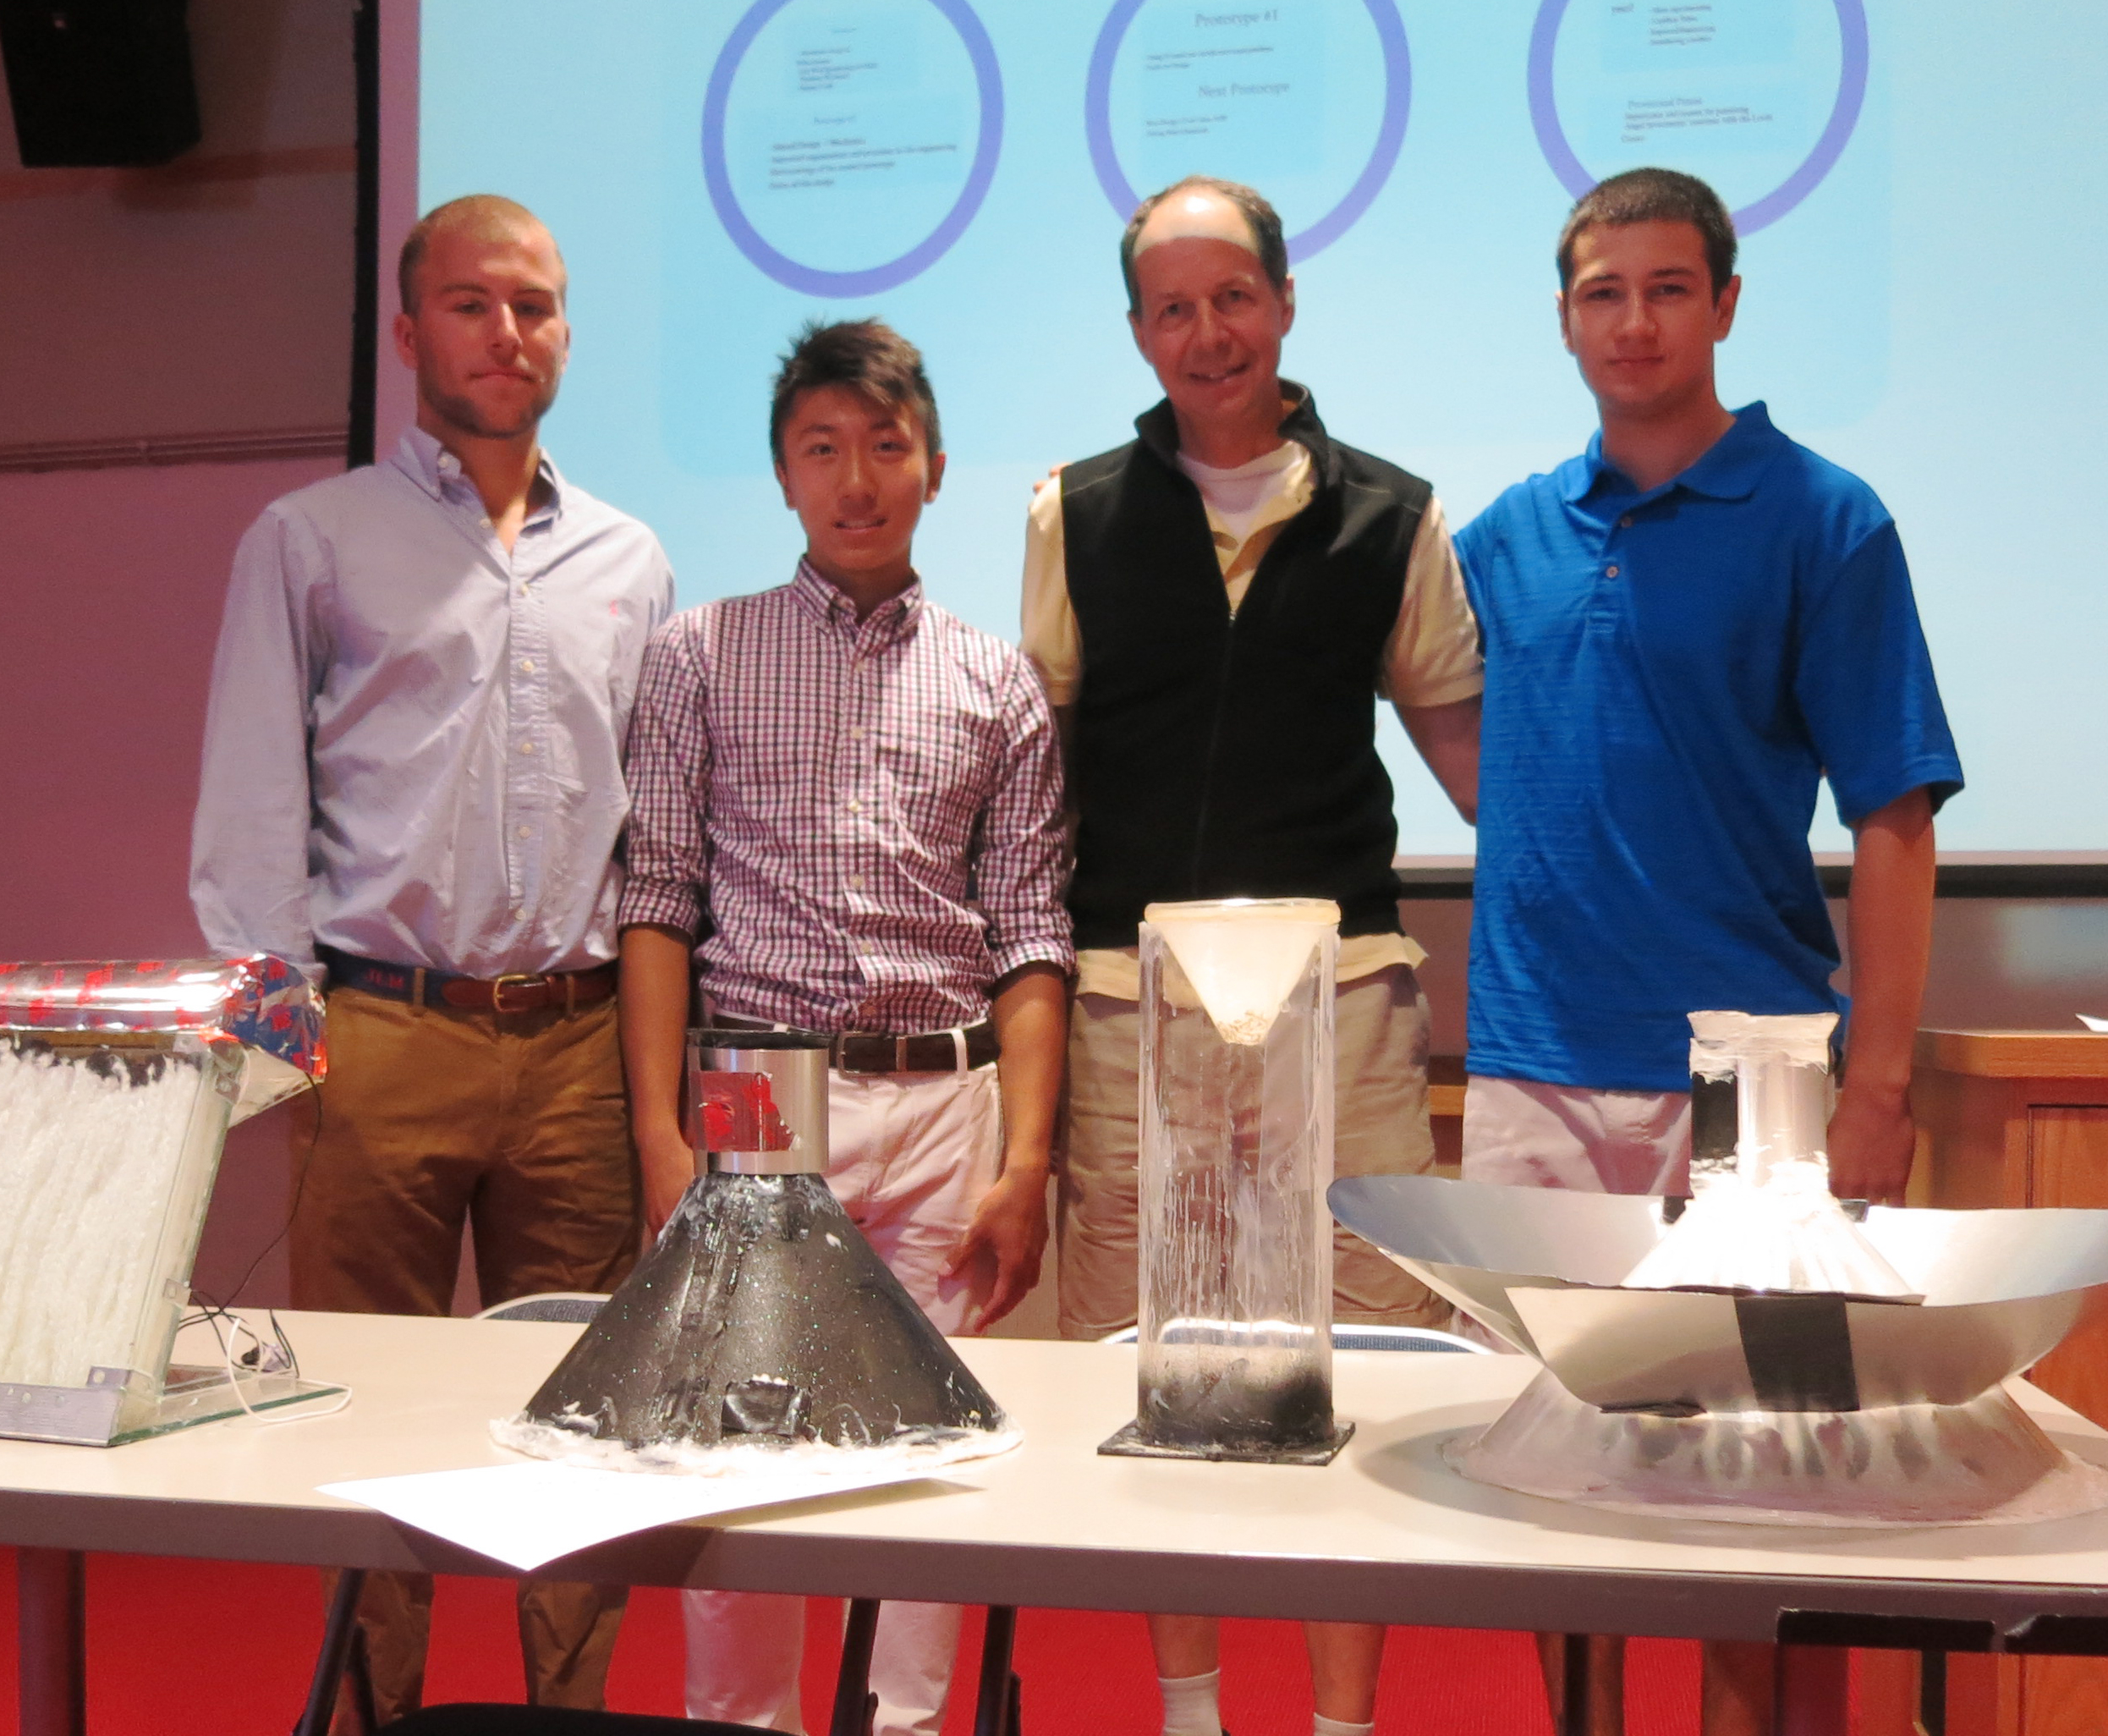 From left John McGuinnis, Andy Chen, Professor Todd Rayne and Zachary Pilson